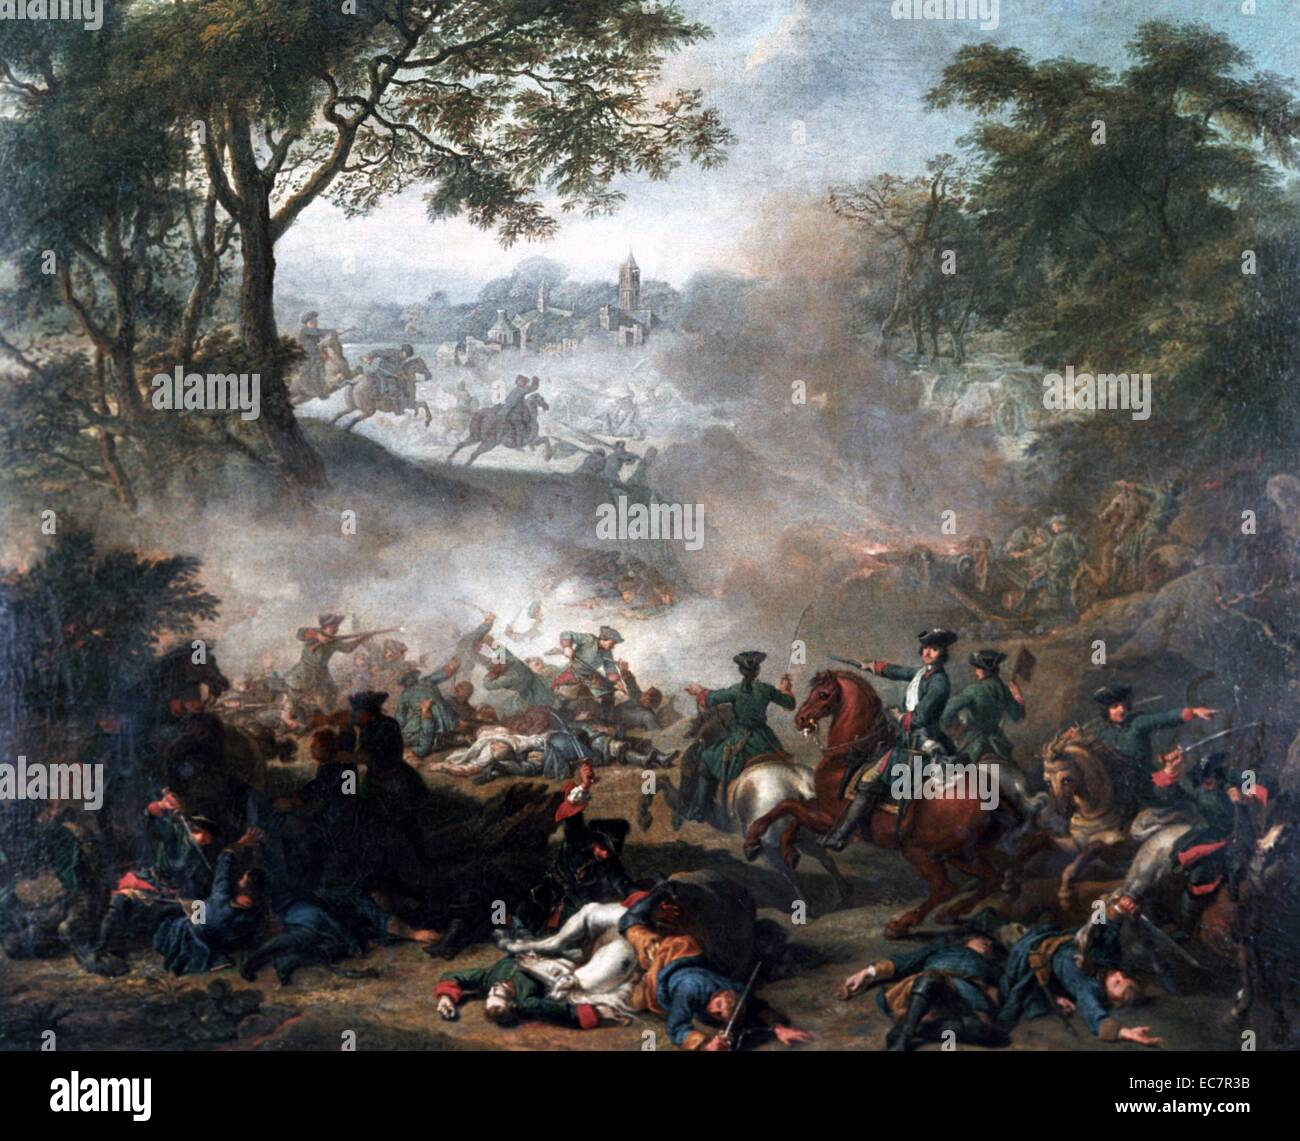 Painting of the Battle of Lesnaya, one of the major battles of the Great Northern War. Dated 1708 - Stock Image